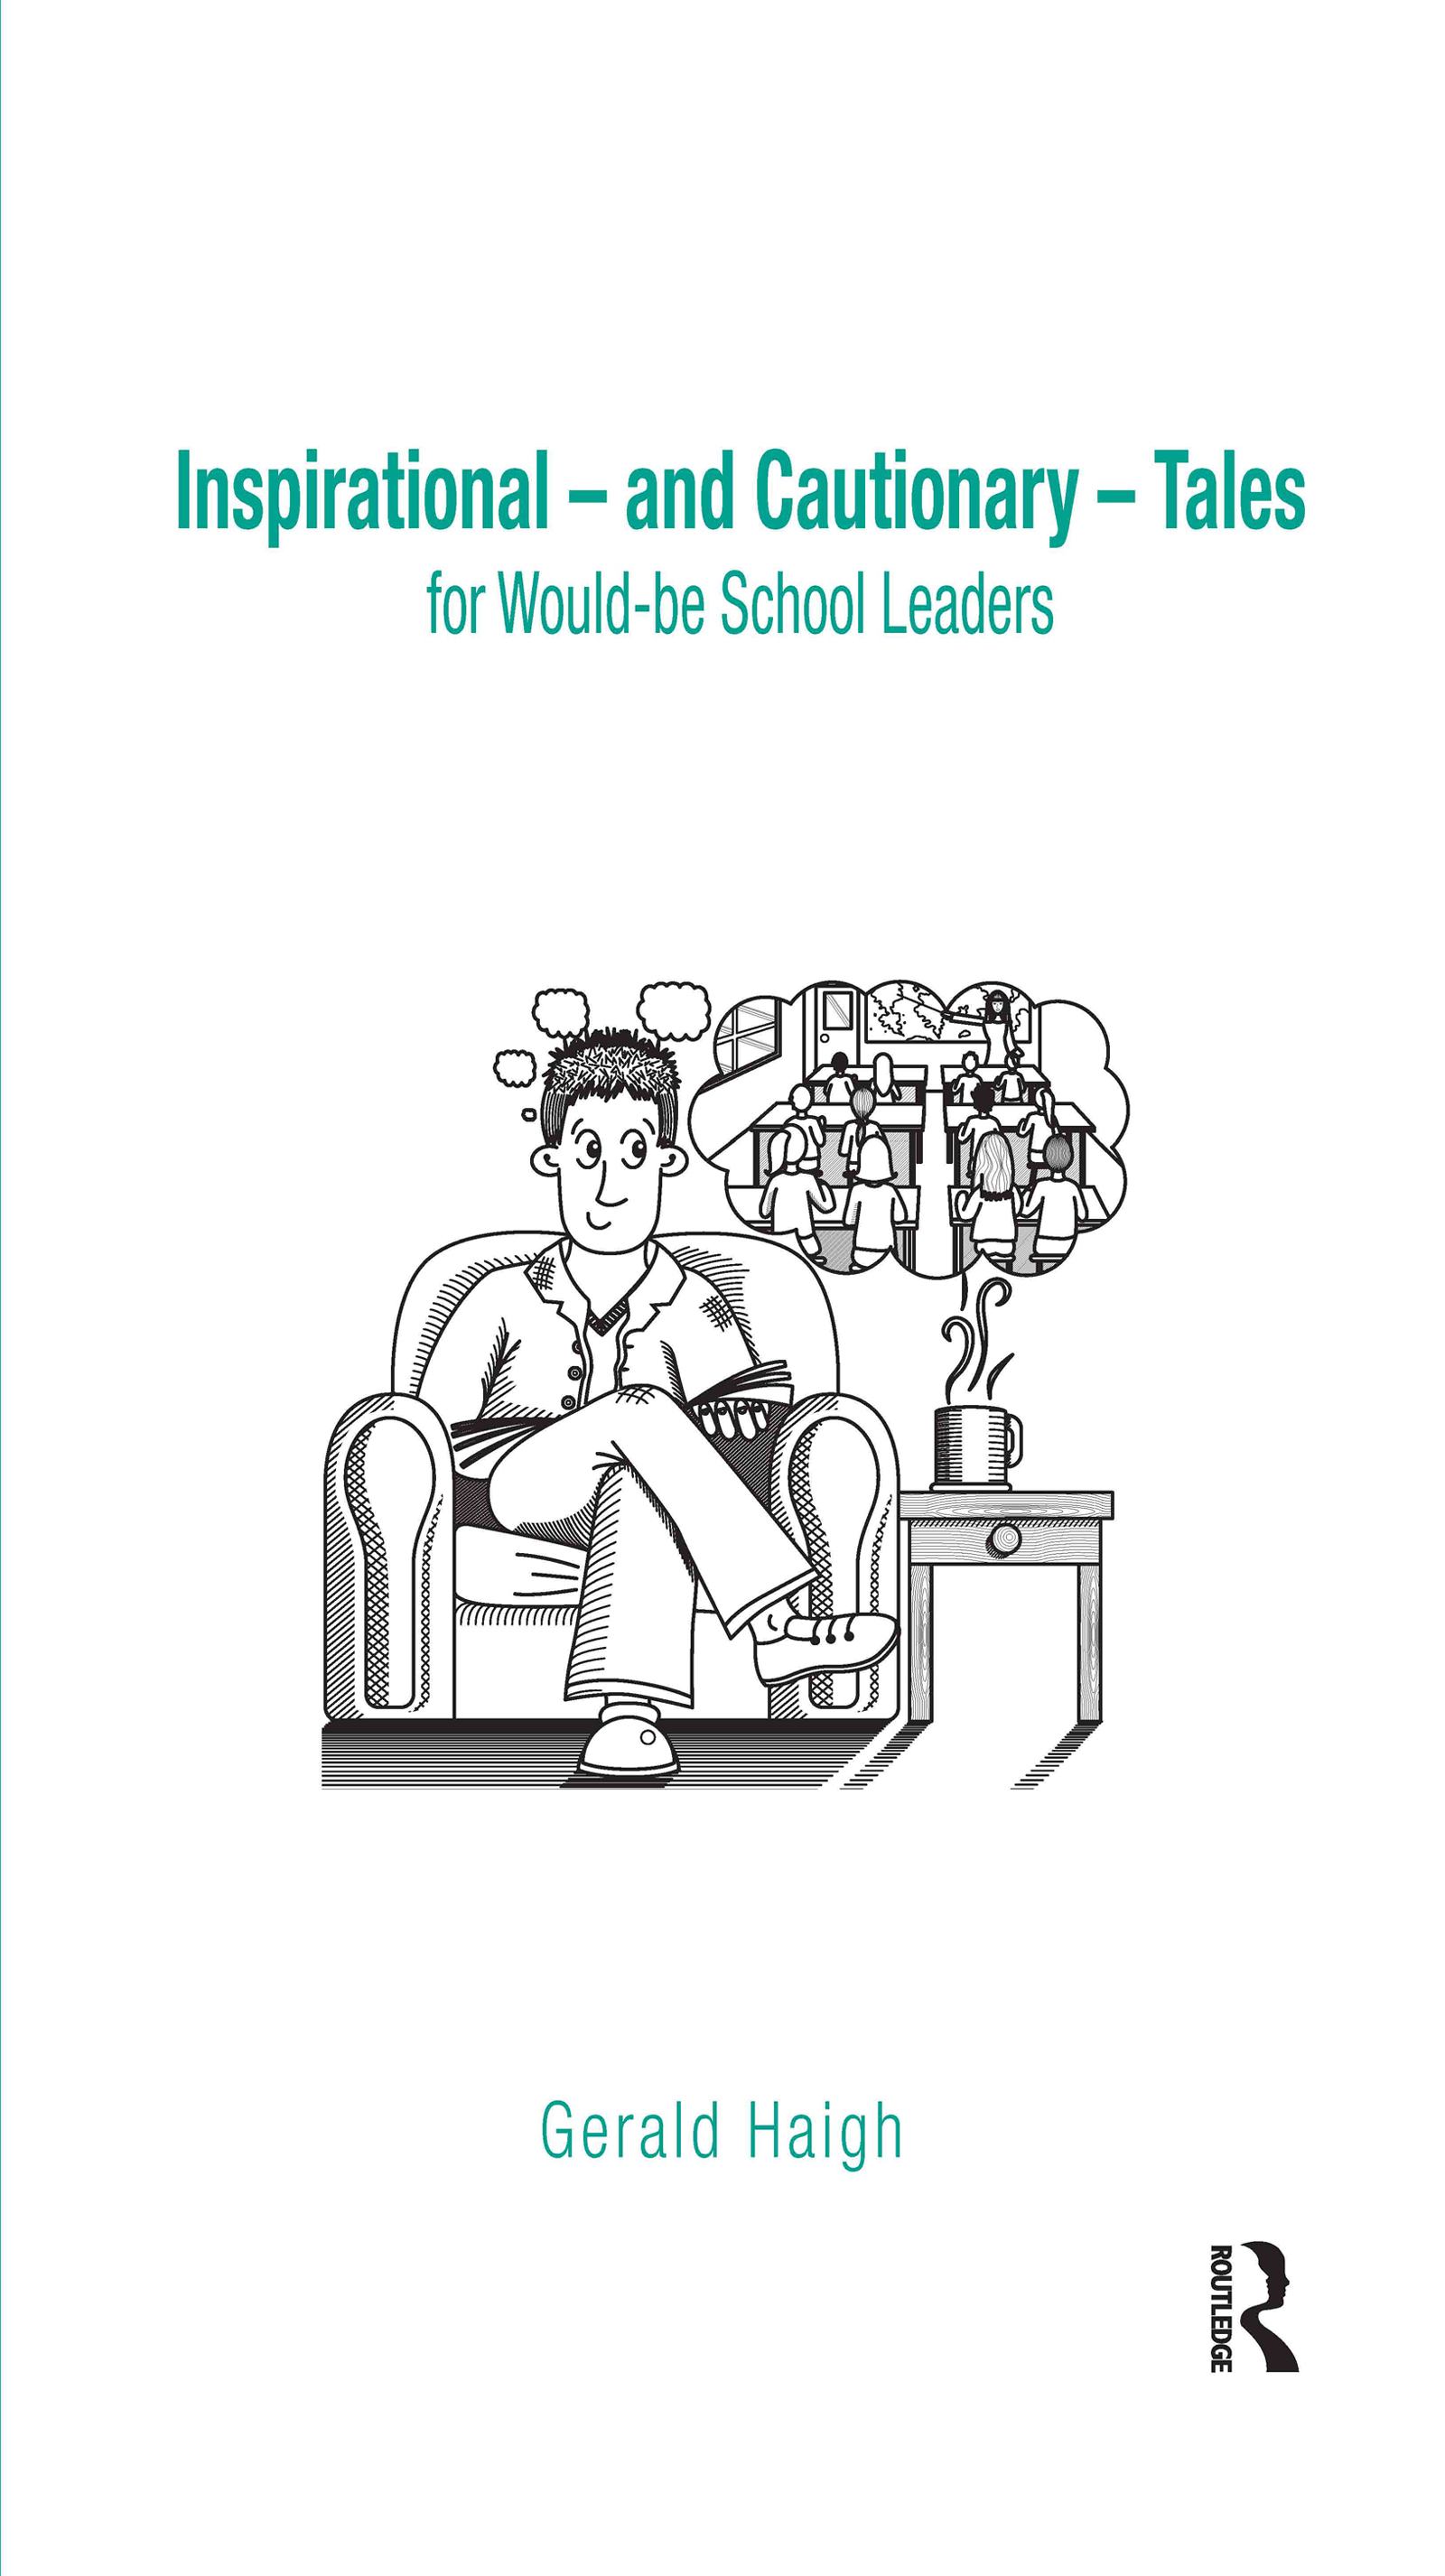 Inspirational - and Cautionary - Tales for Would-be School Leaders